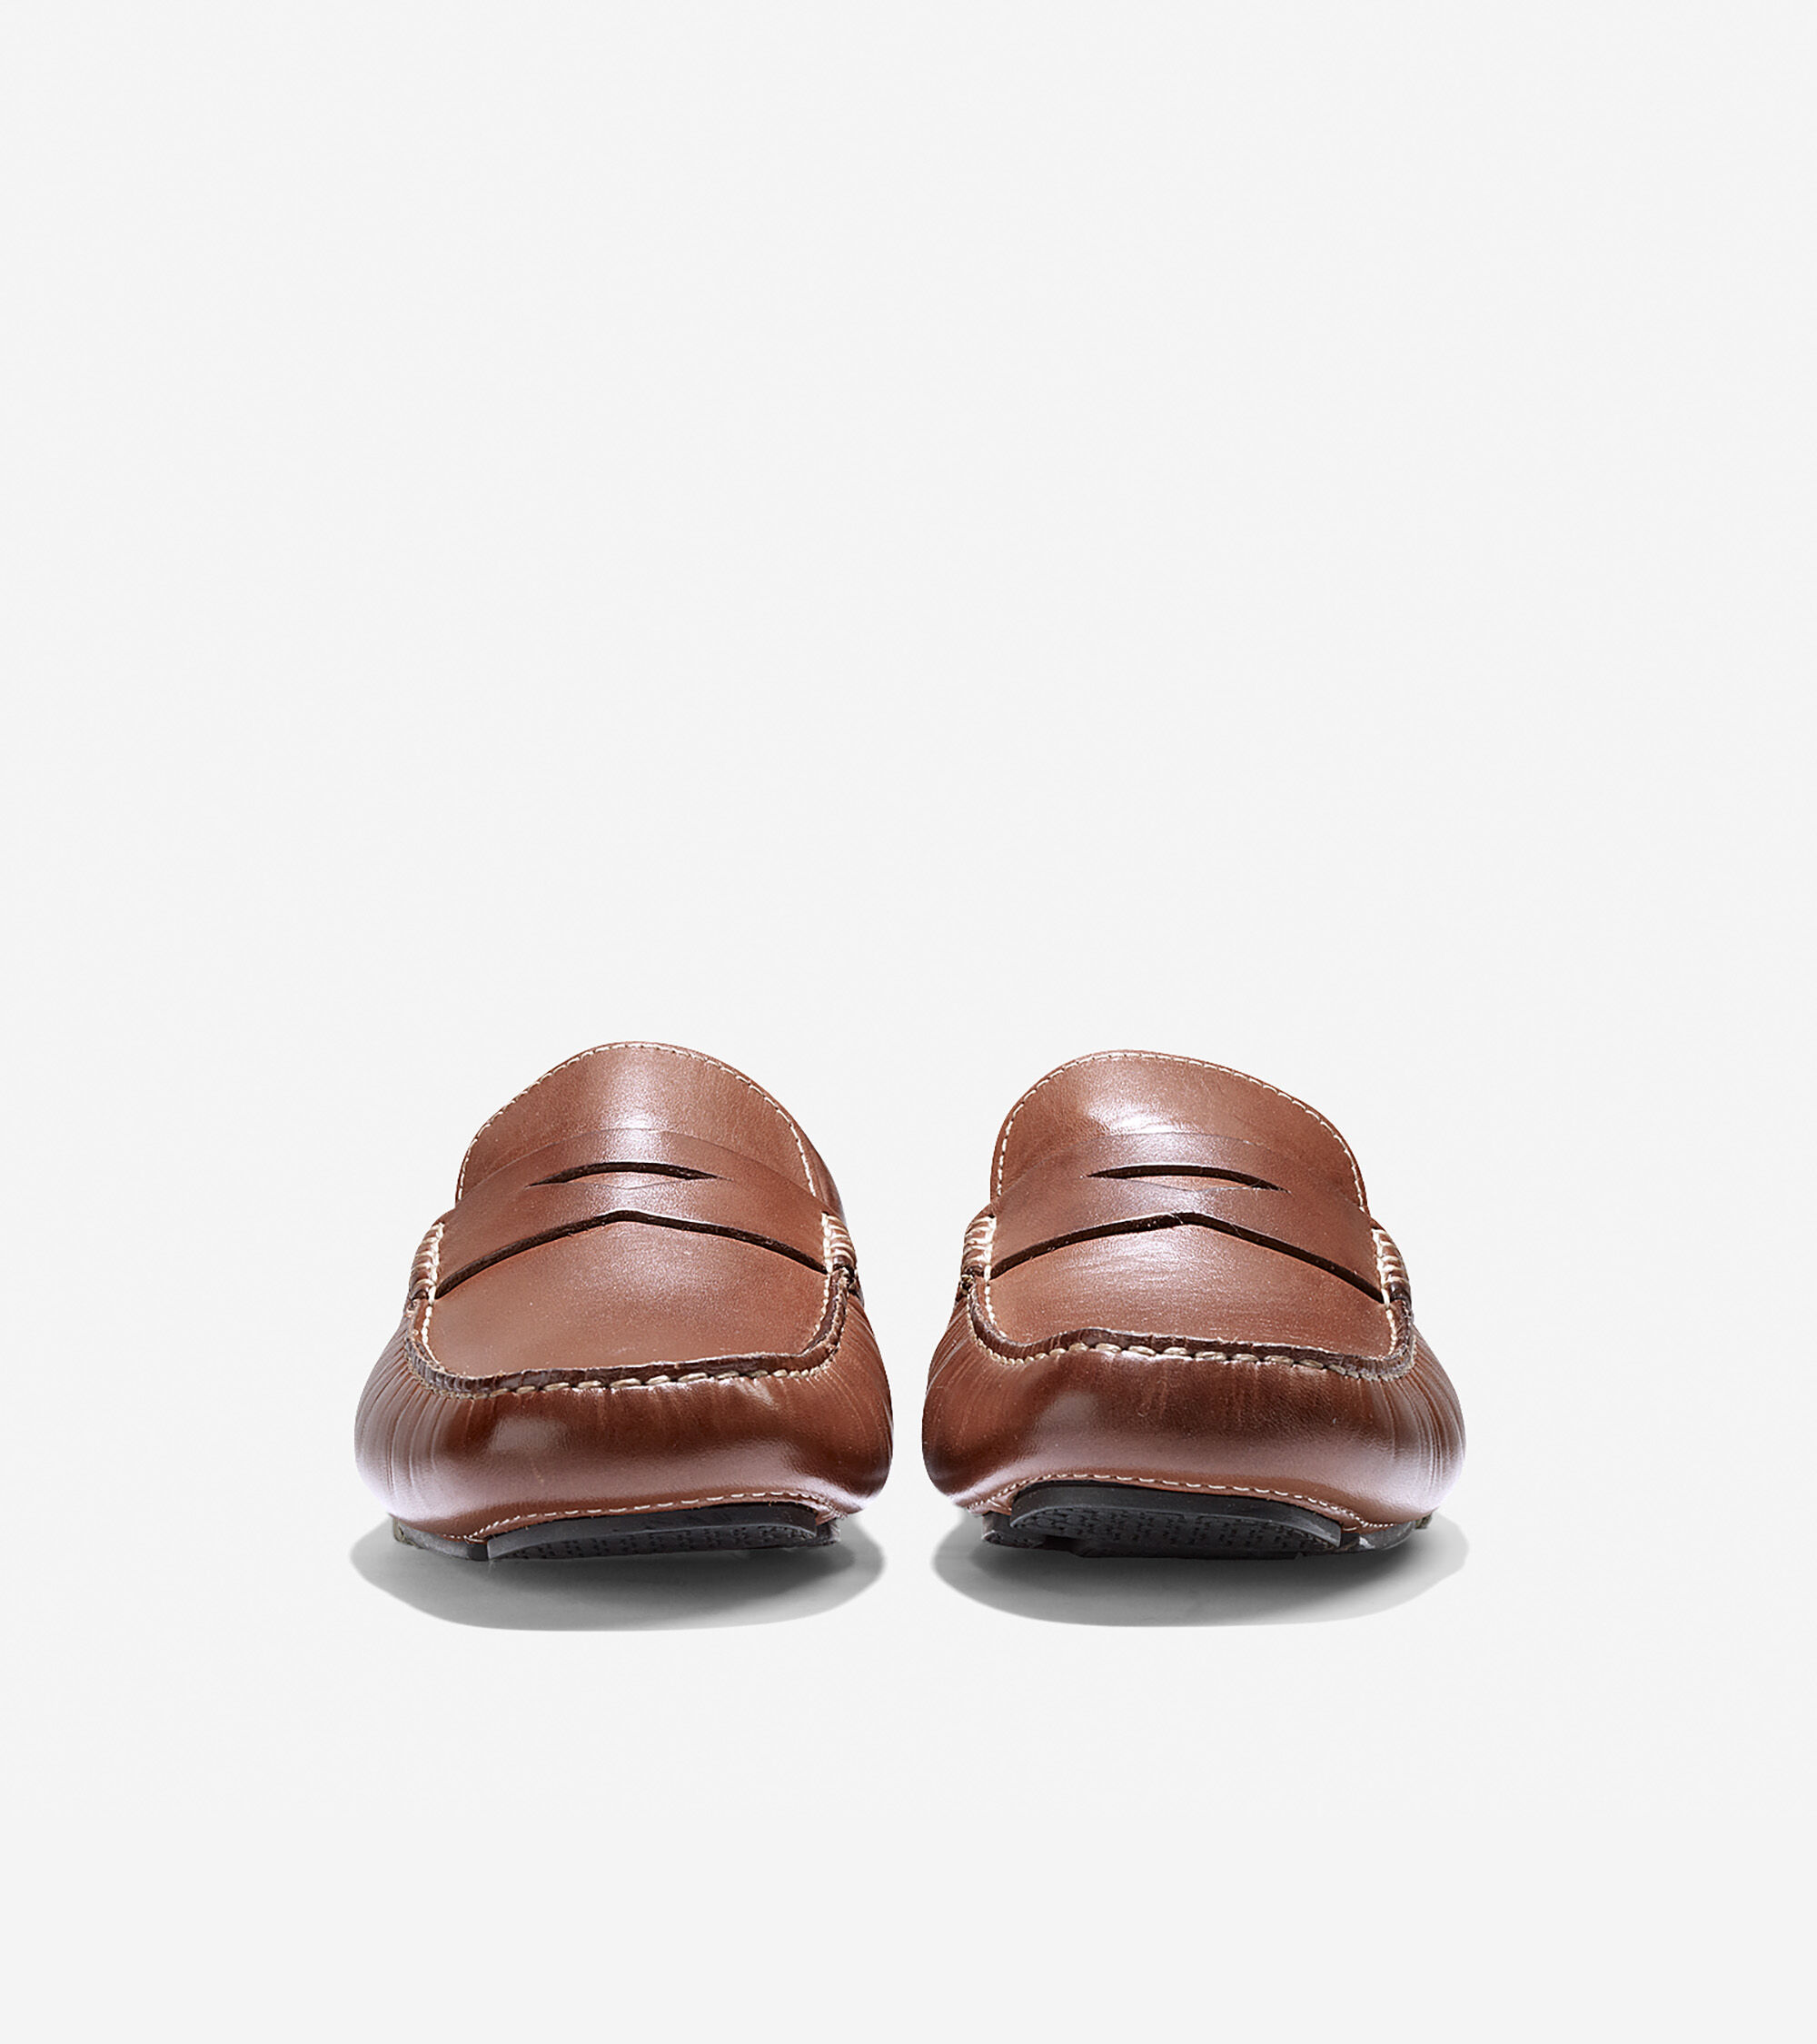 0e3d6750d Howland Penny Loafer · Howland Penny Loafer ...